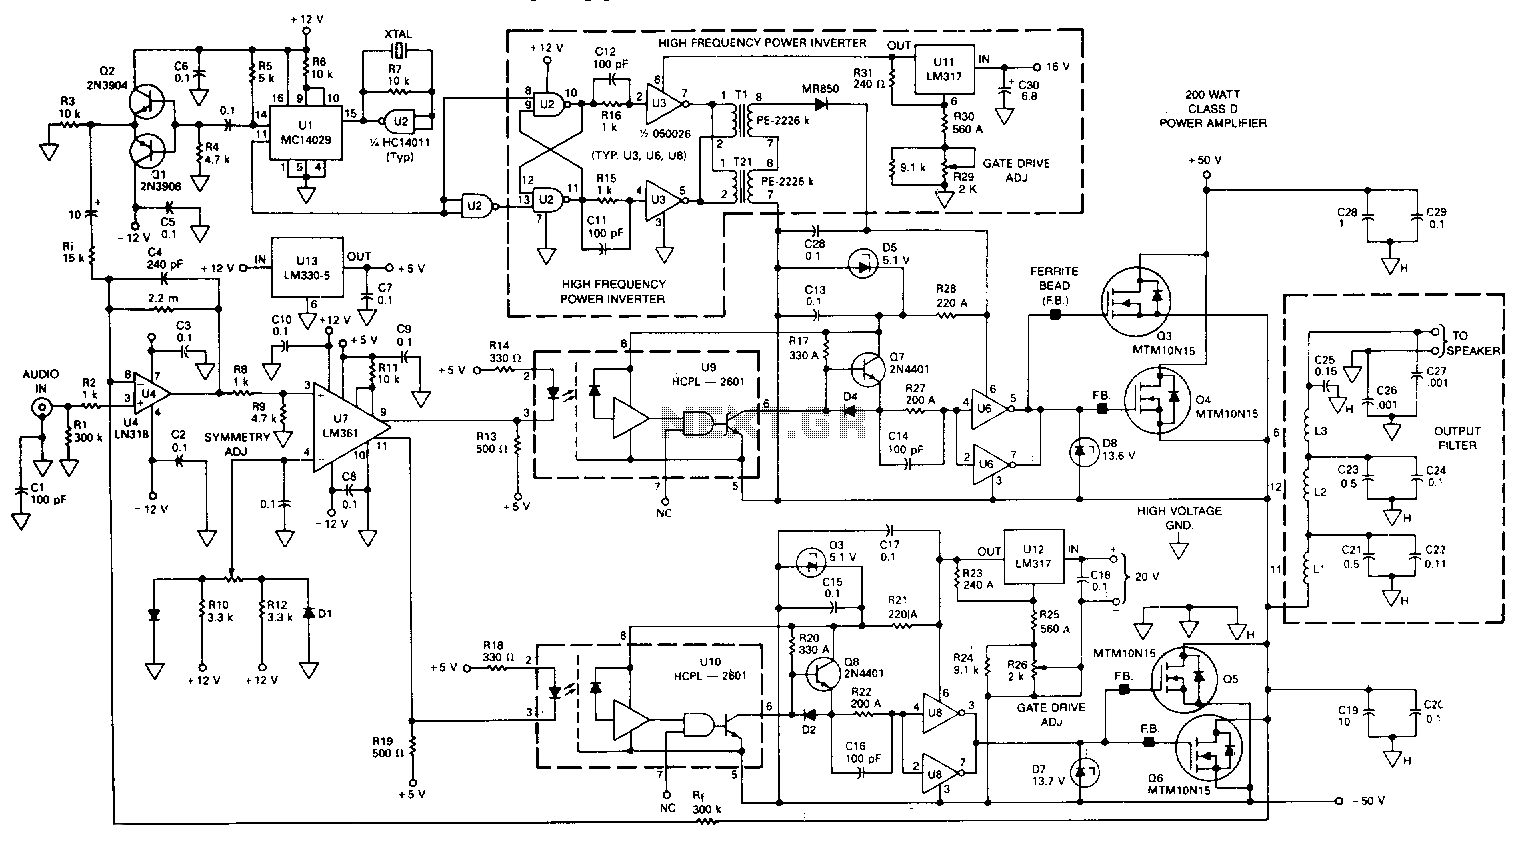 New Circuits Page 223 Lm358n Lowpower Dual Opamp With Low Input Bias Current Class D Power Amplifier